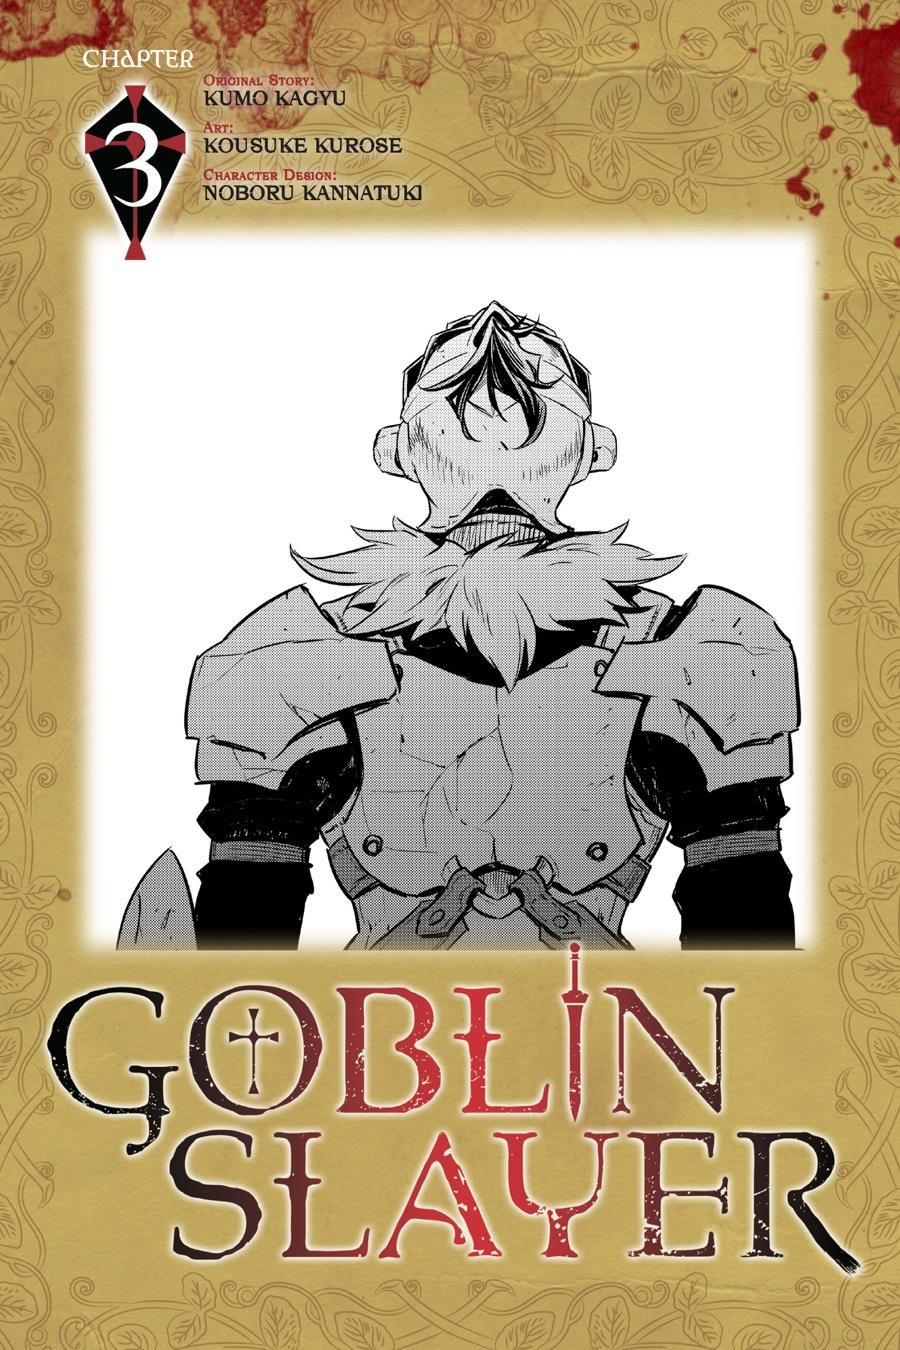 Goblin Slayer Chapter 3 part 1. join list: GoblinSlayerManga (305 subs)Mention Clicks: 690Msgs Sent: 894Mention History [trigger medium controls collection Gobl